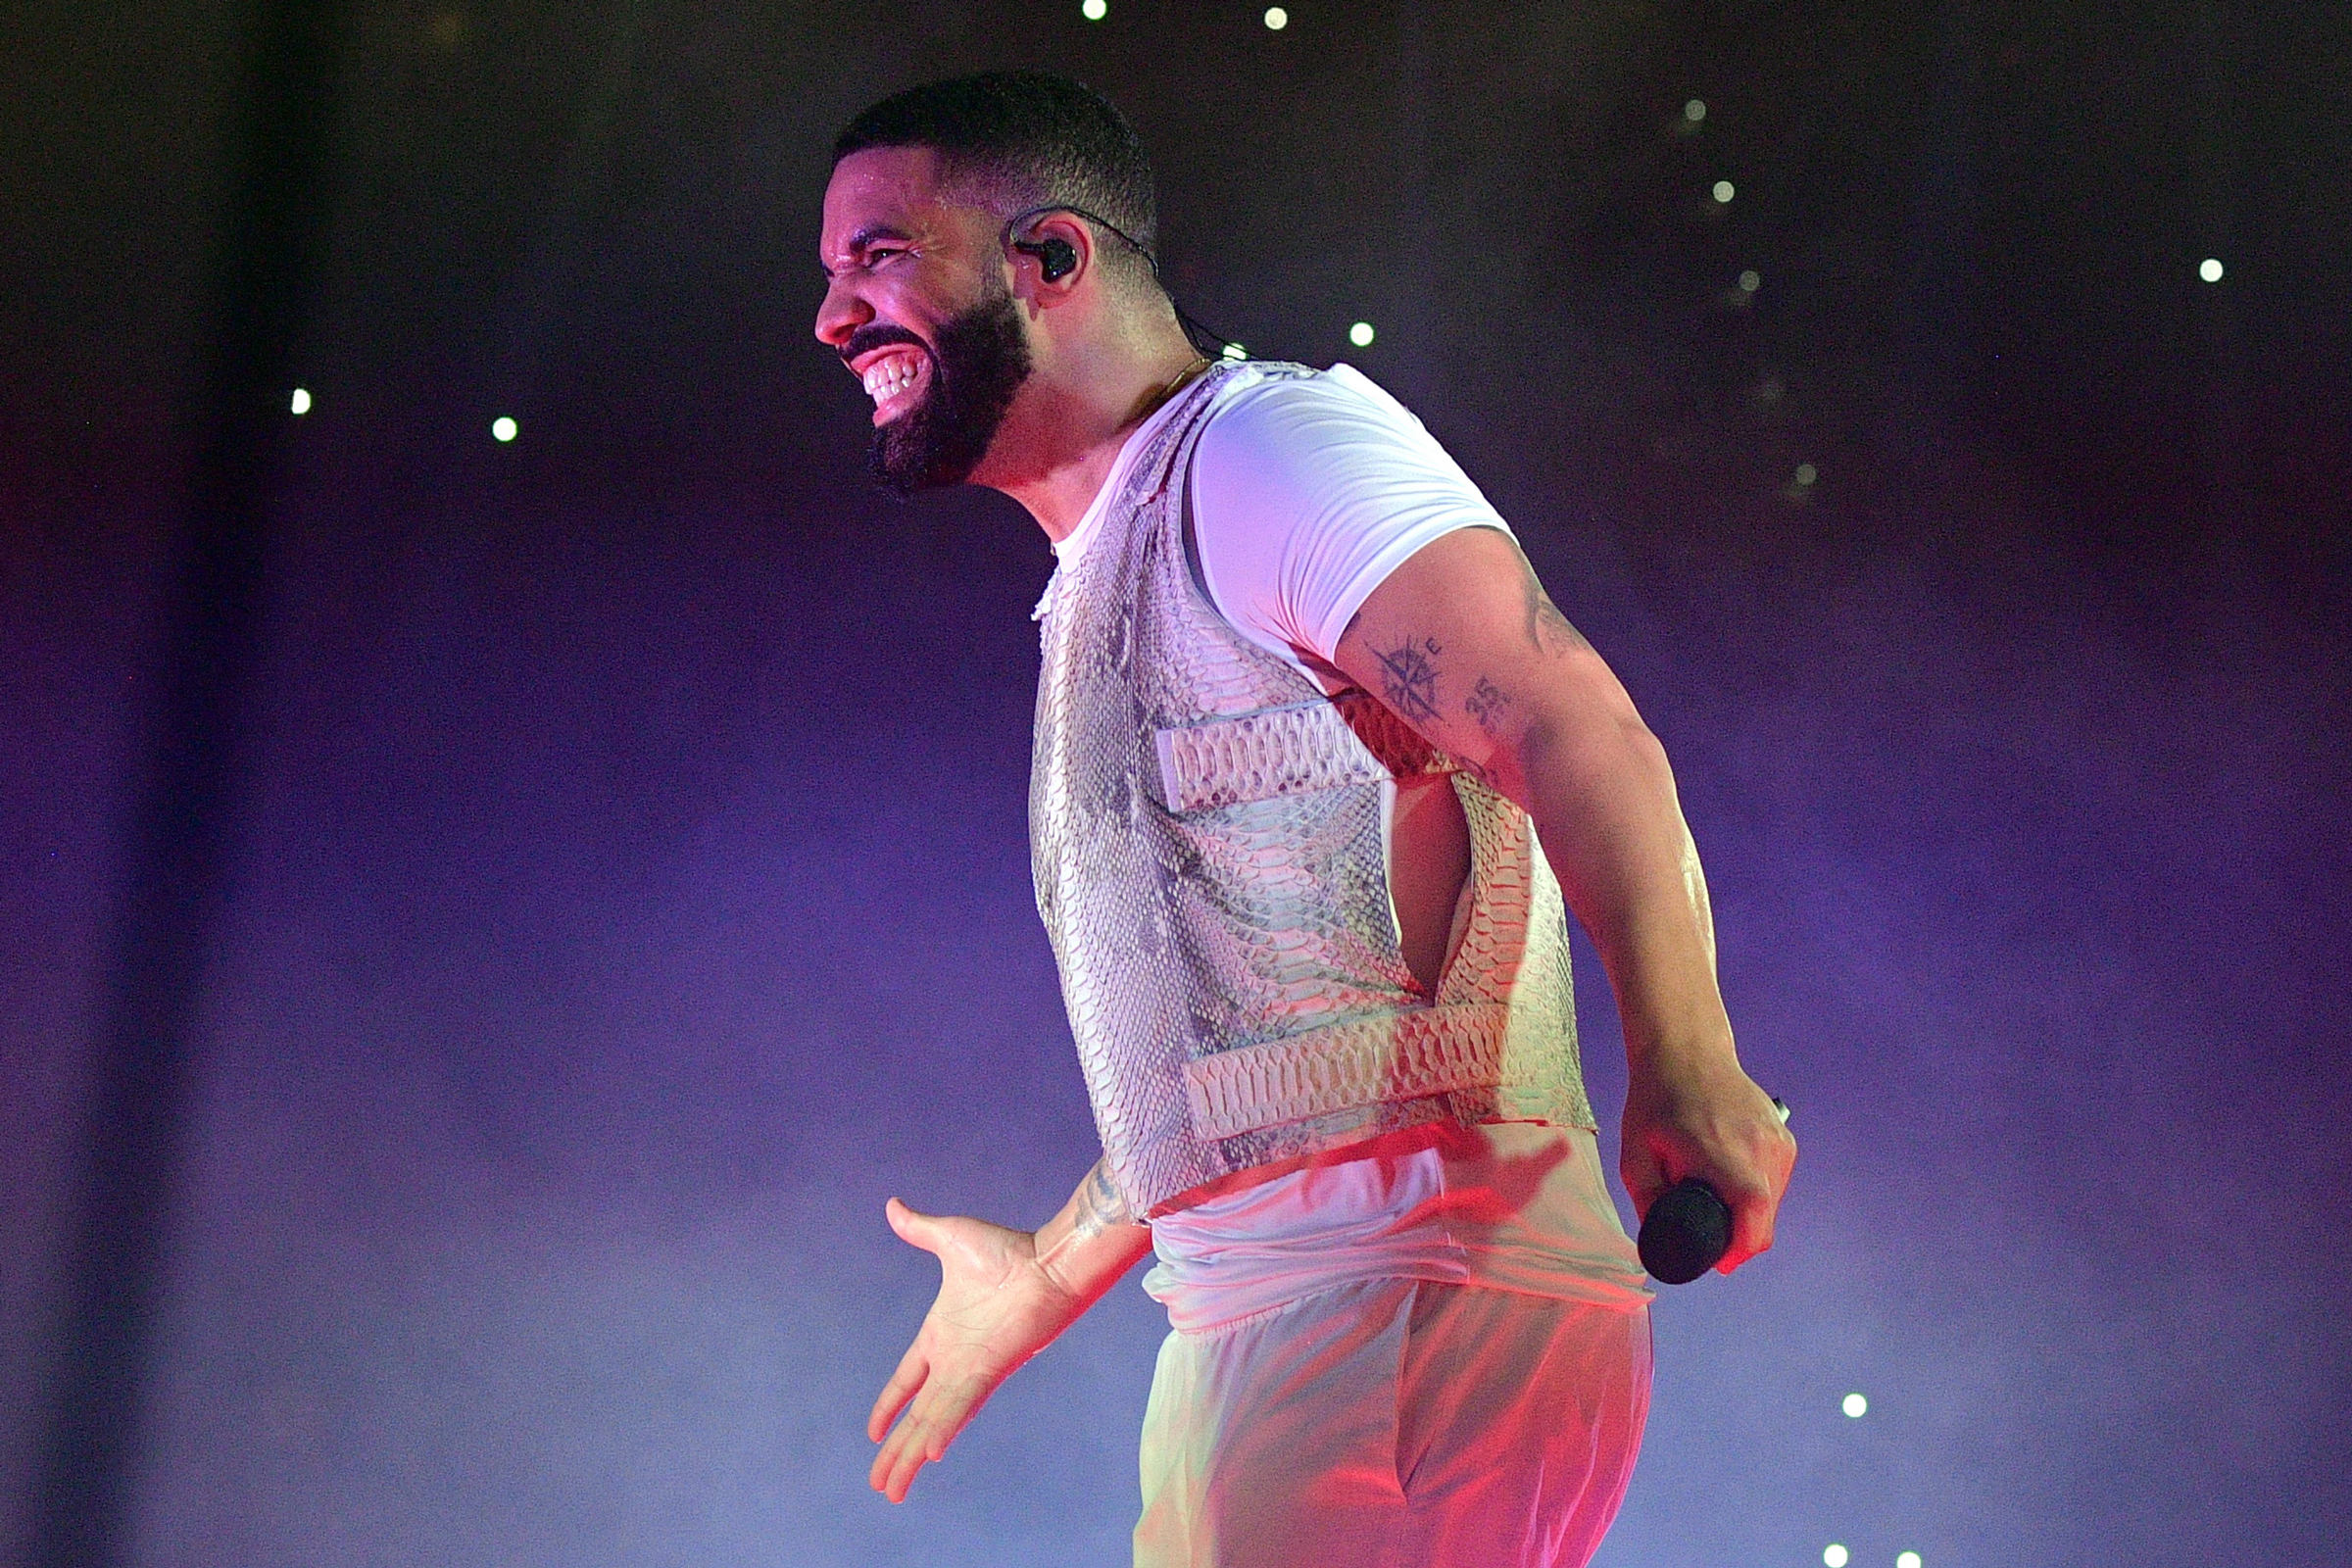 Zerchoo Music - RS Charts: Drake Posts Huge Numbers to Reclaim Top